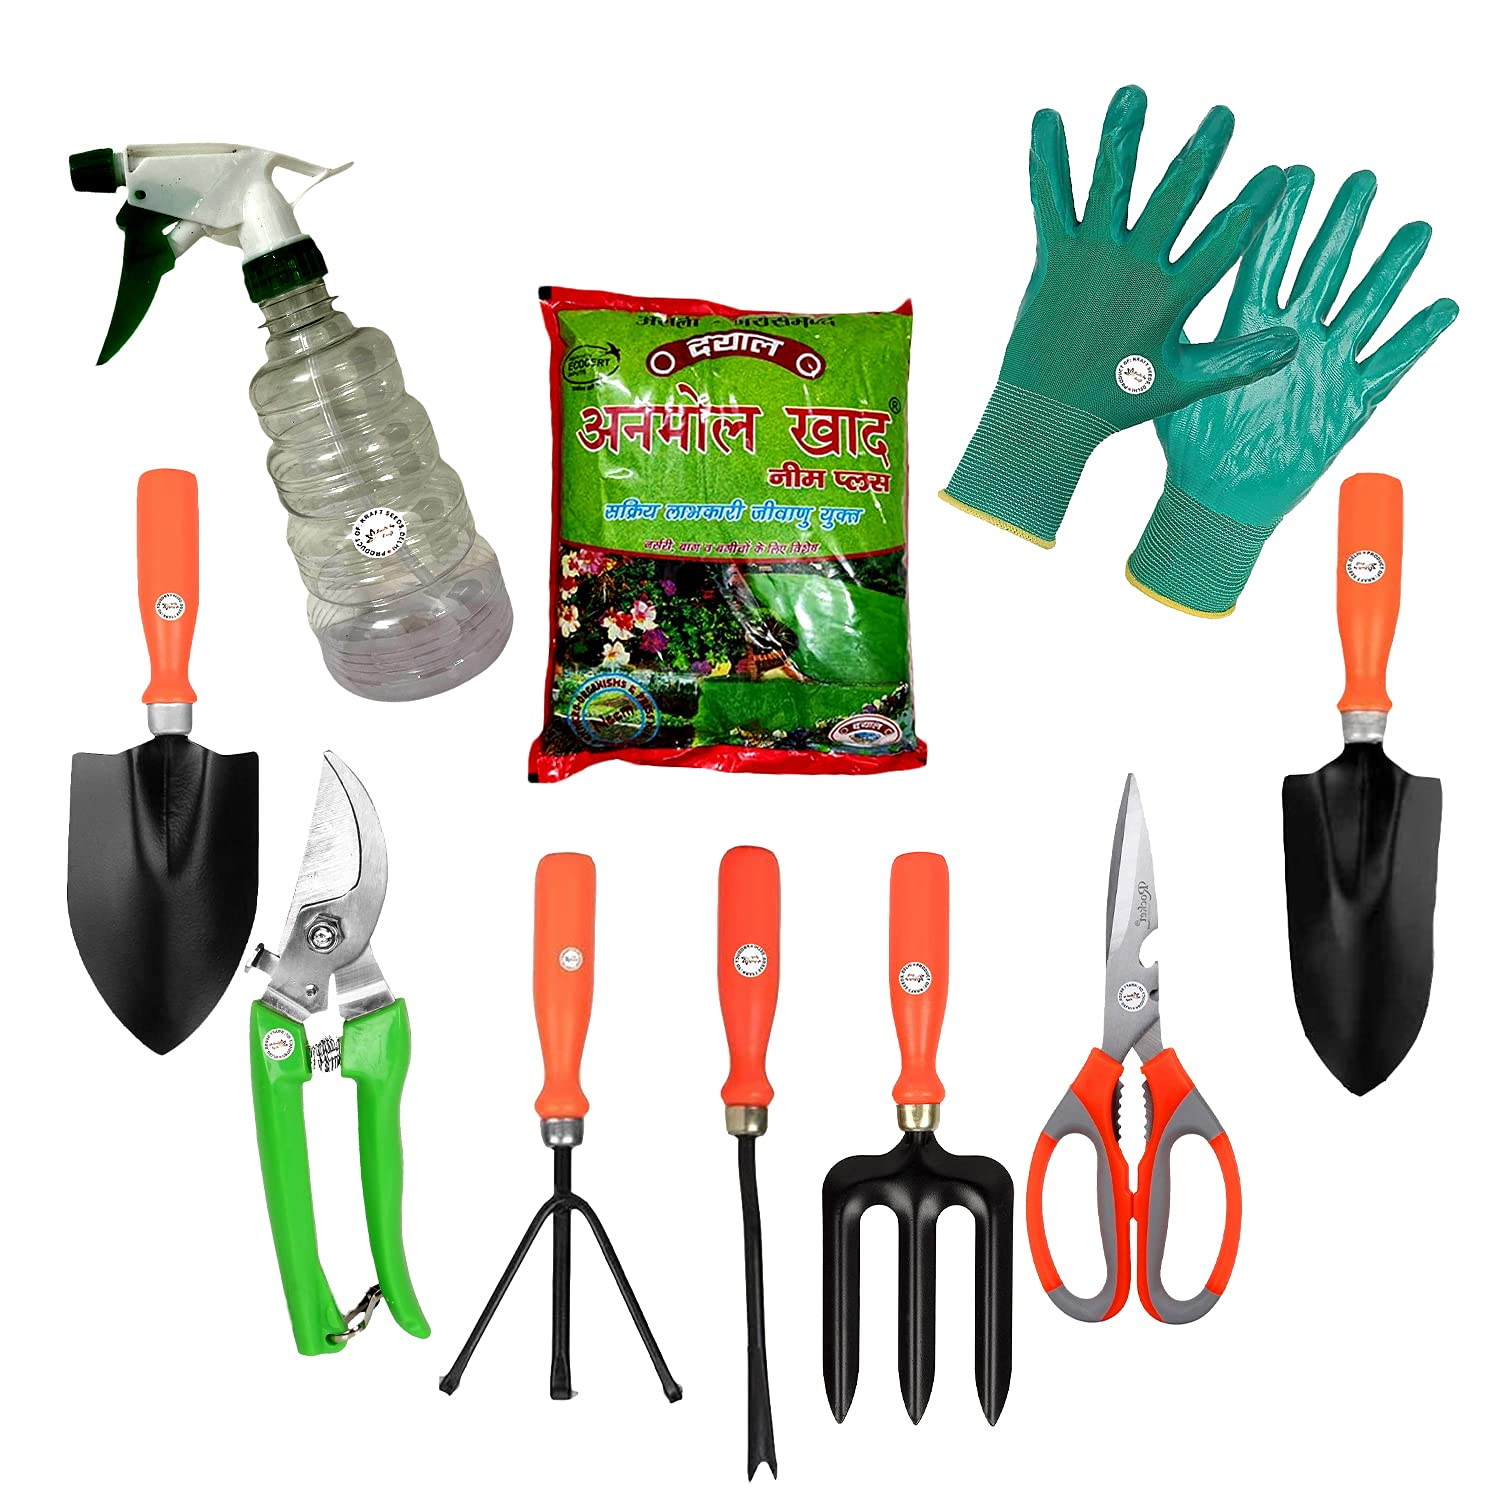 Kraft Seeds Garden Tool Kit with Scissors, Pruner and One Pair of Hand Gloves Comfortable and Durable with Spray Pump 500ml and Organic Manure 2kg (Set of 10) Free Veg Seed Packet